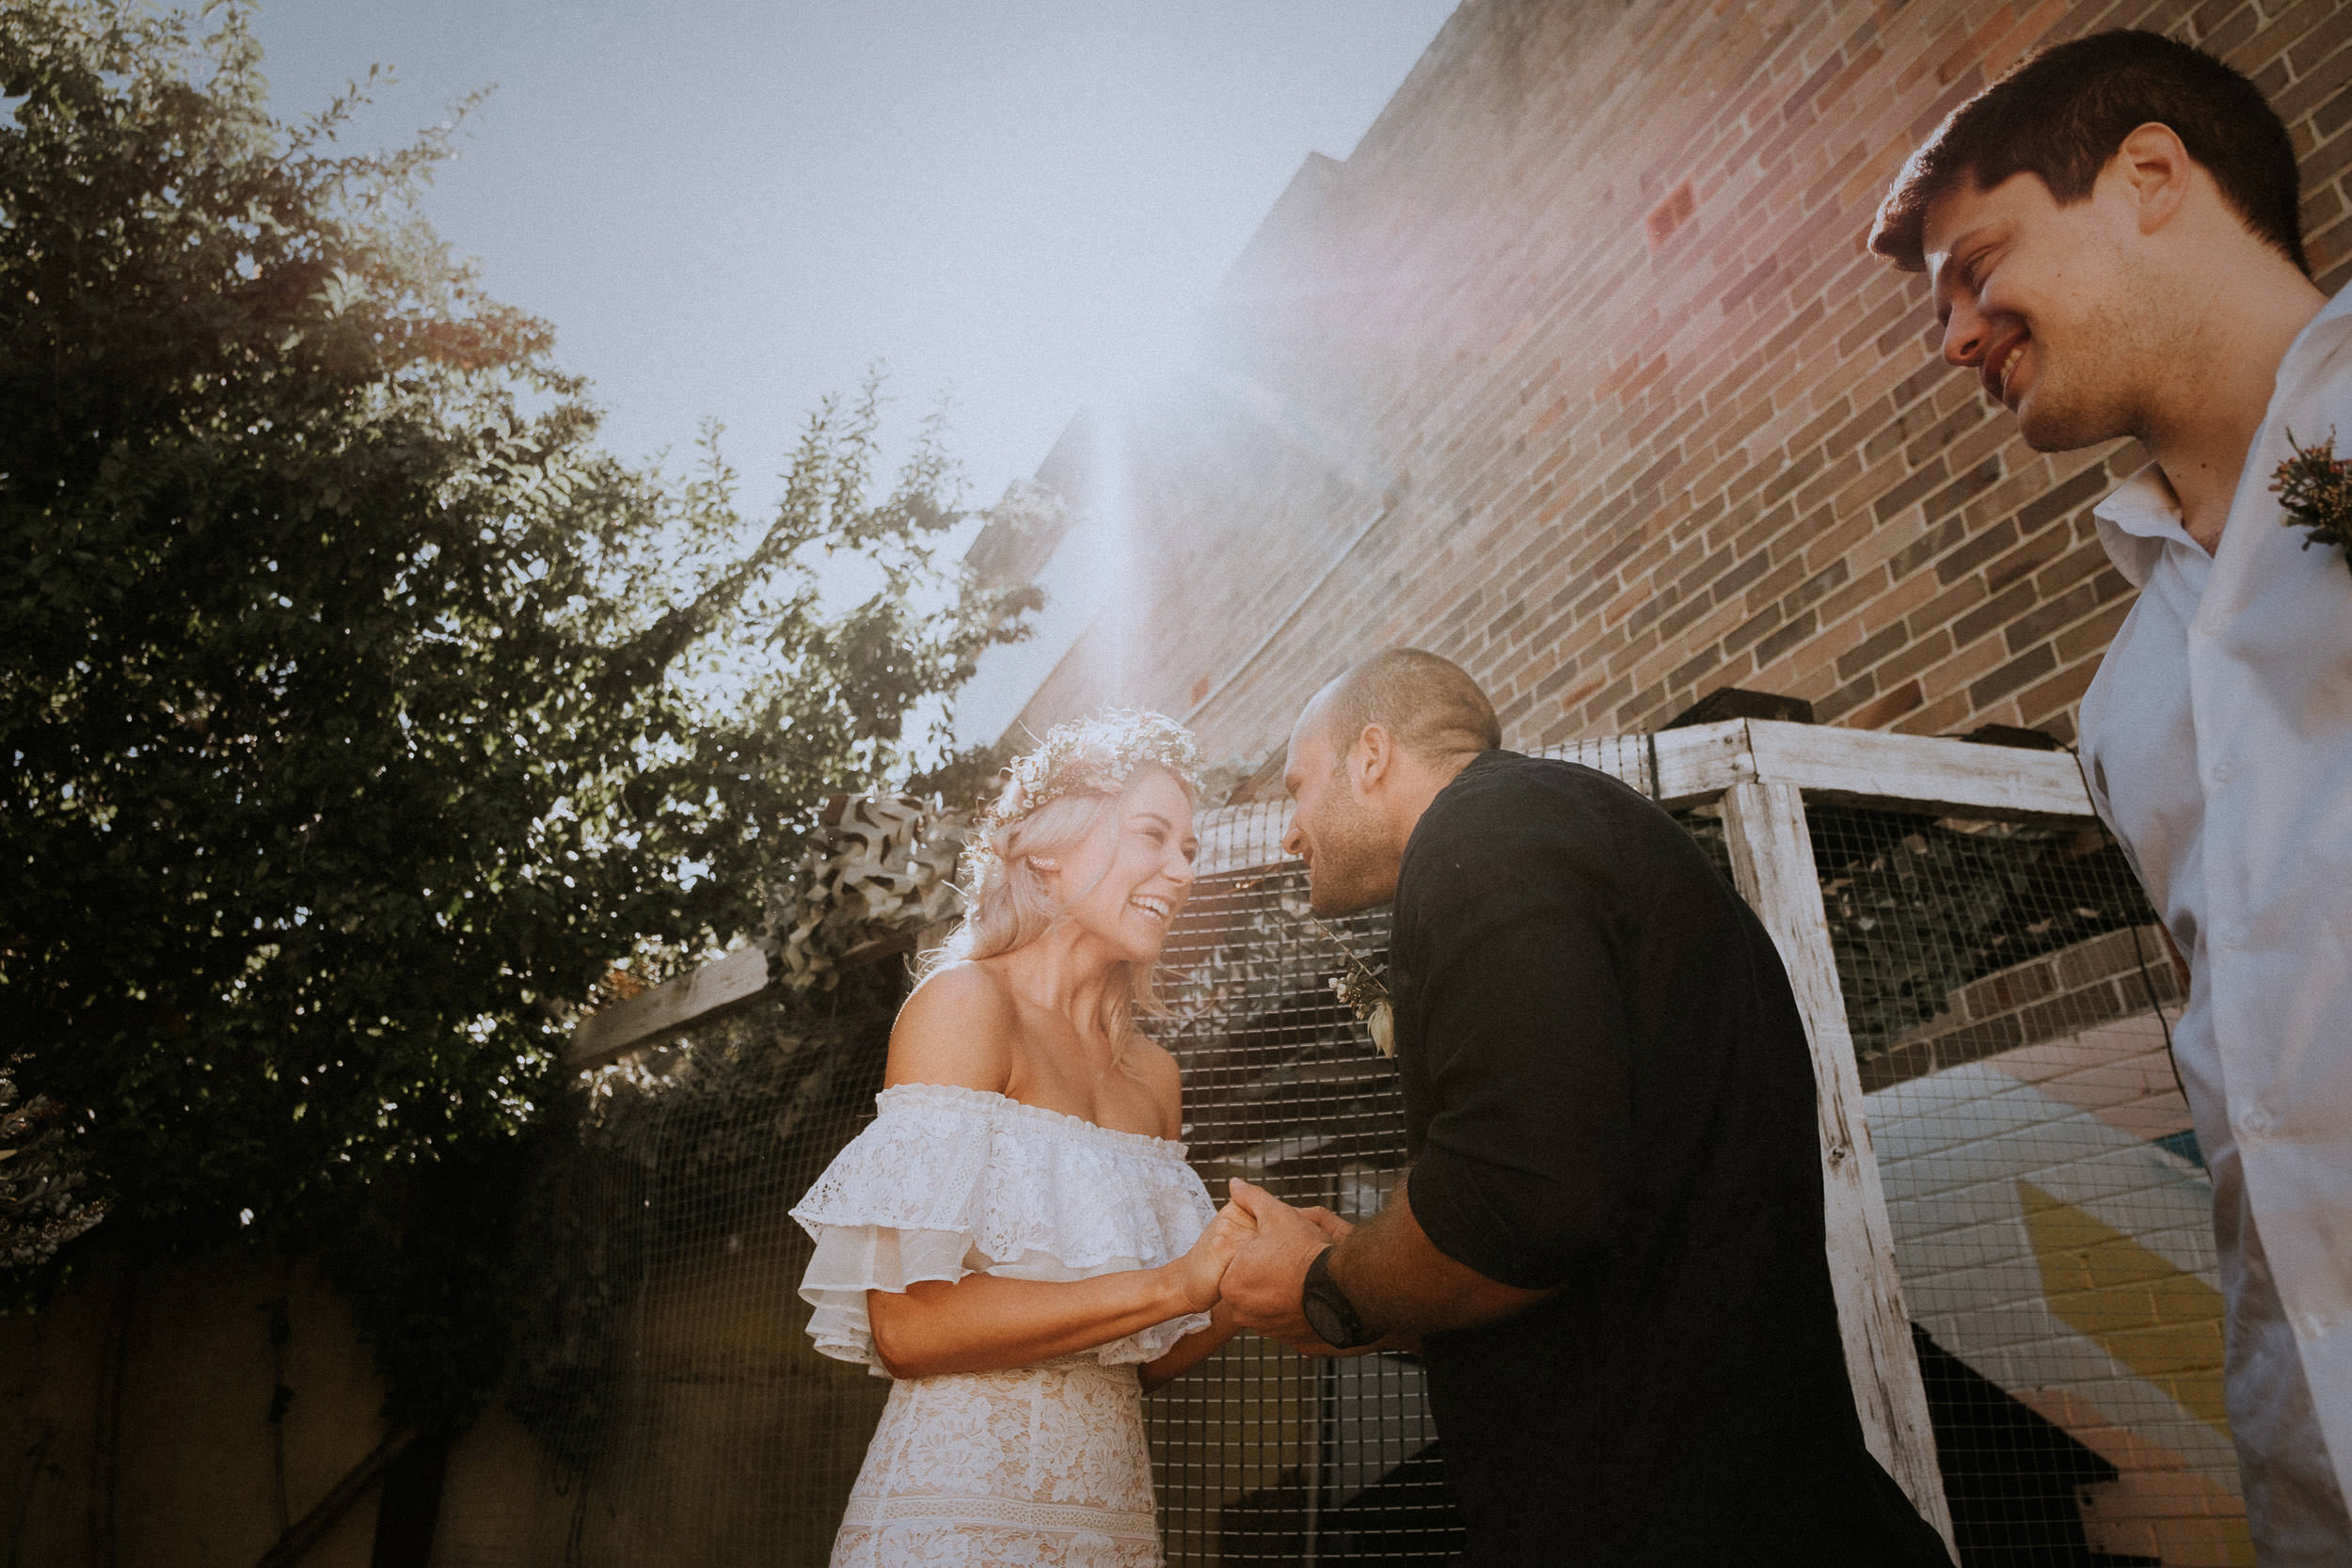 kings _ thieves - beth _ corey backyard airbnb elopement sydney - submission -65.jpg